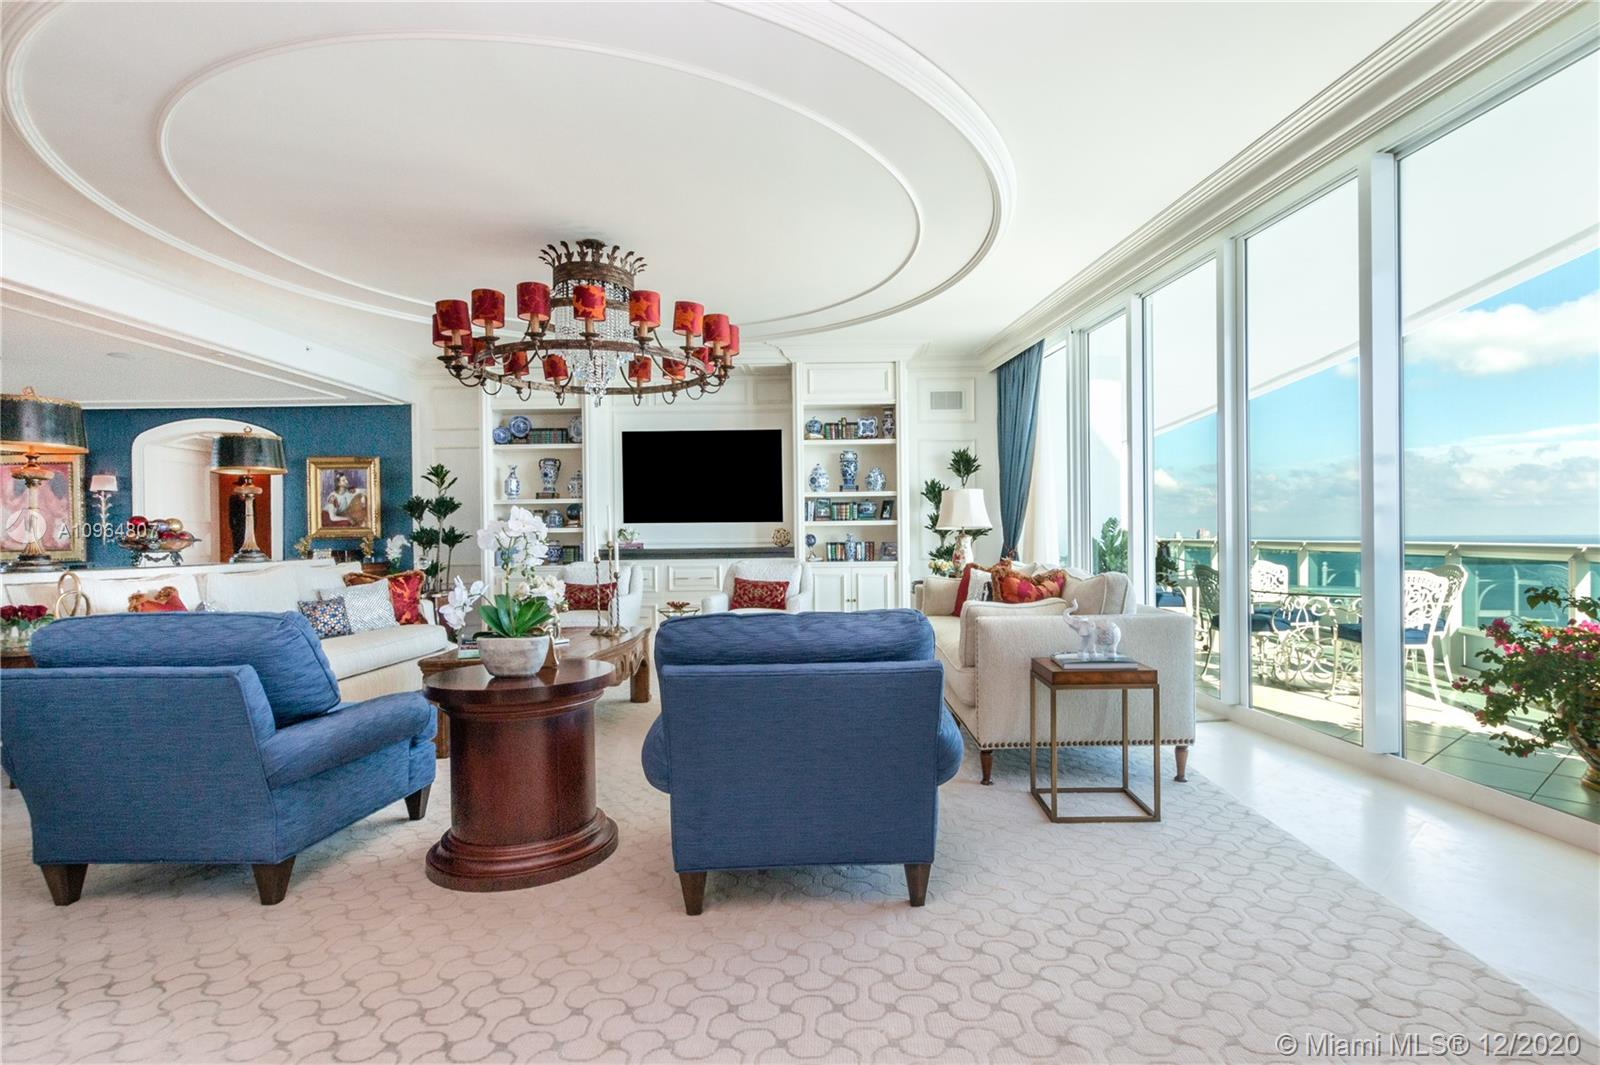 Spectacular flow-through custom designed residence with incredible details throughout. This unit features a private elevator foyer, 4,030 SQFT of living area, French limestone floors, 11 ft ceilings, Italian kitchen with top of the line appliances, surround sound system, expansive terraces with amazing views of the Bay, Miami Skyline and more.